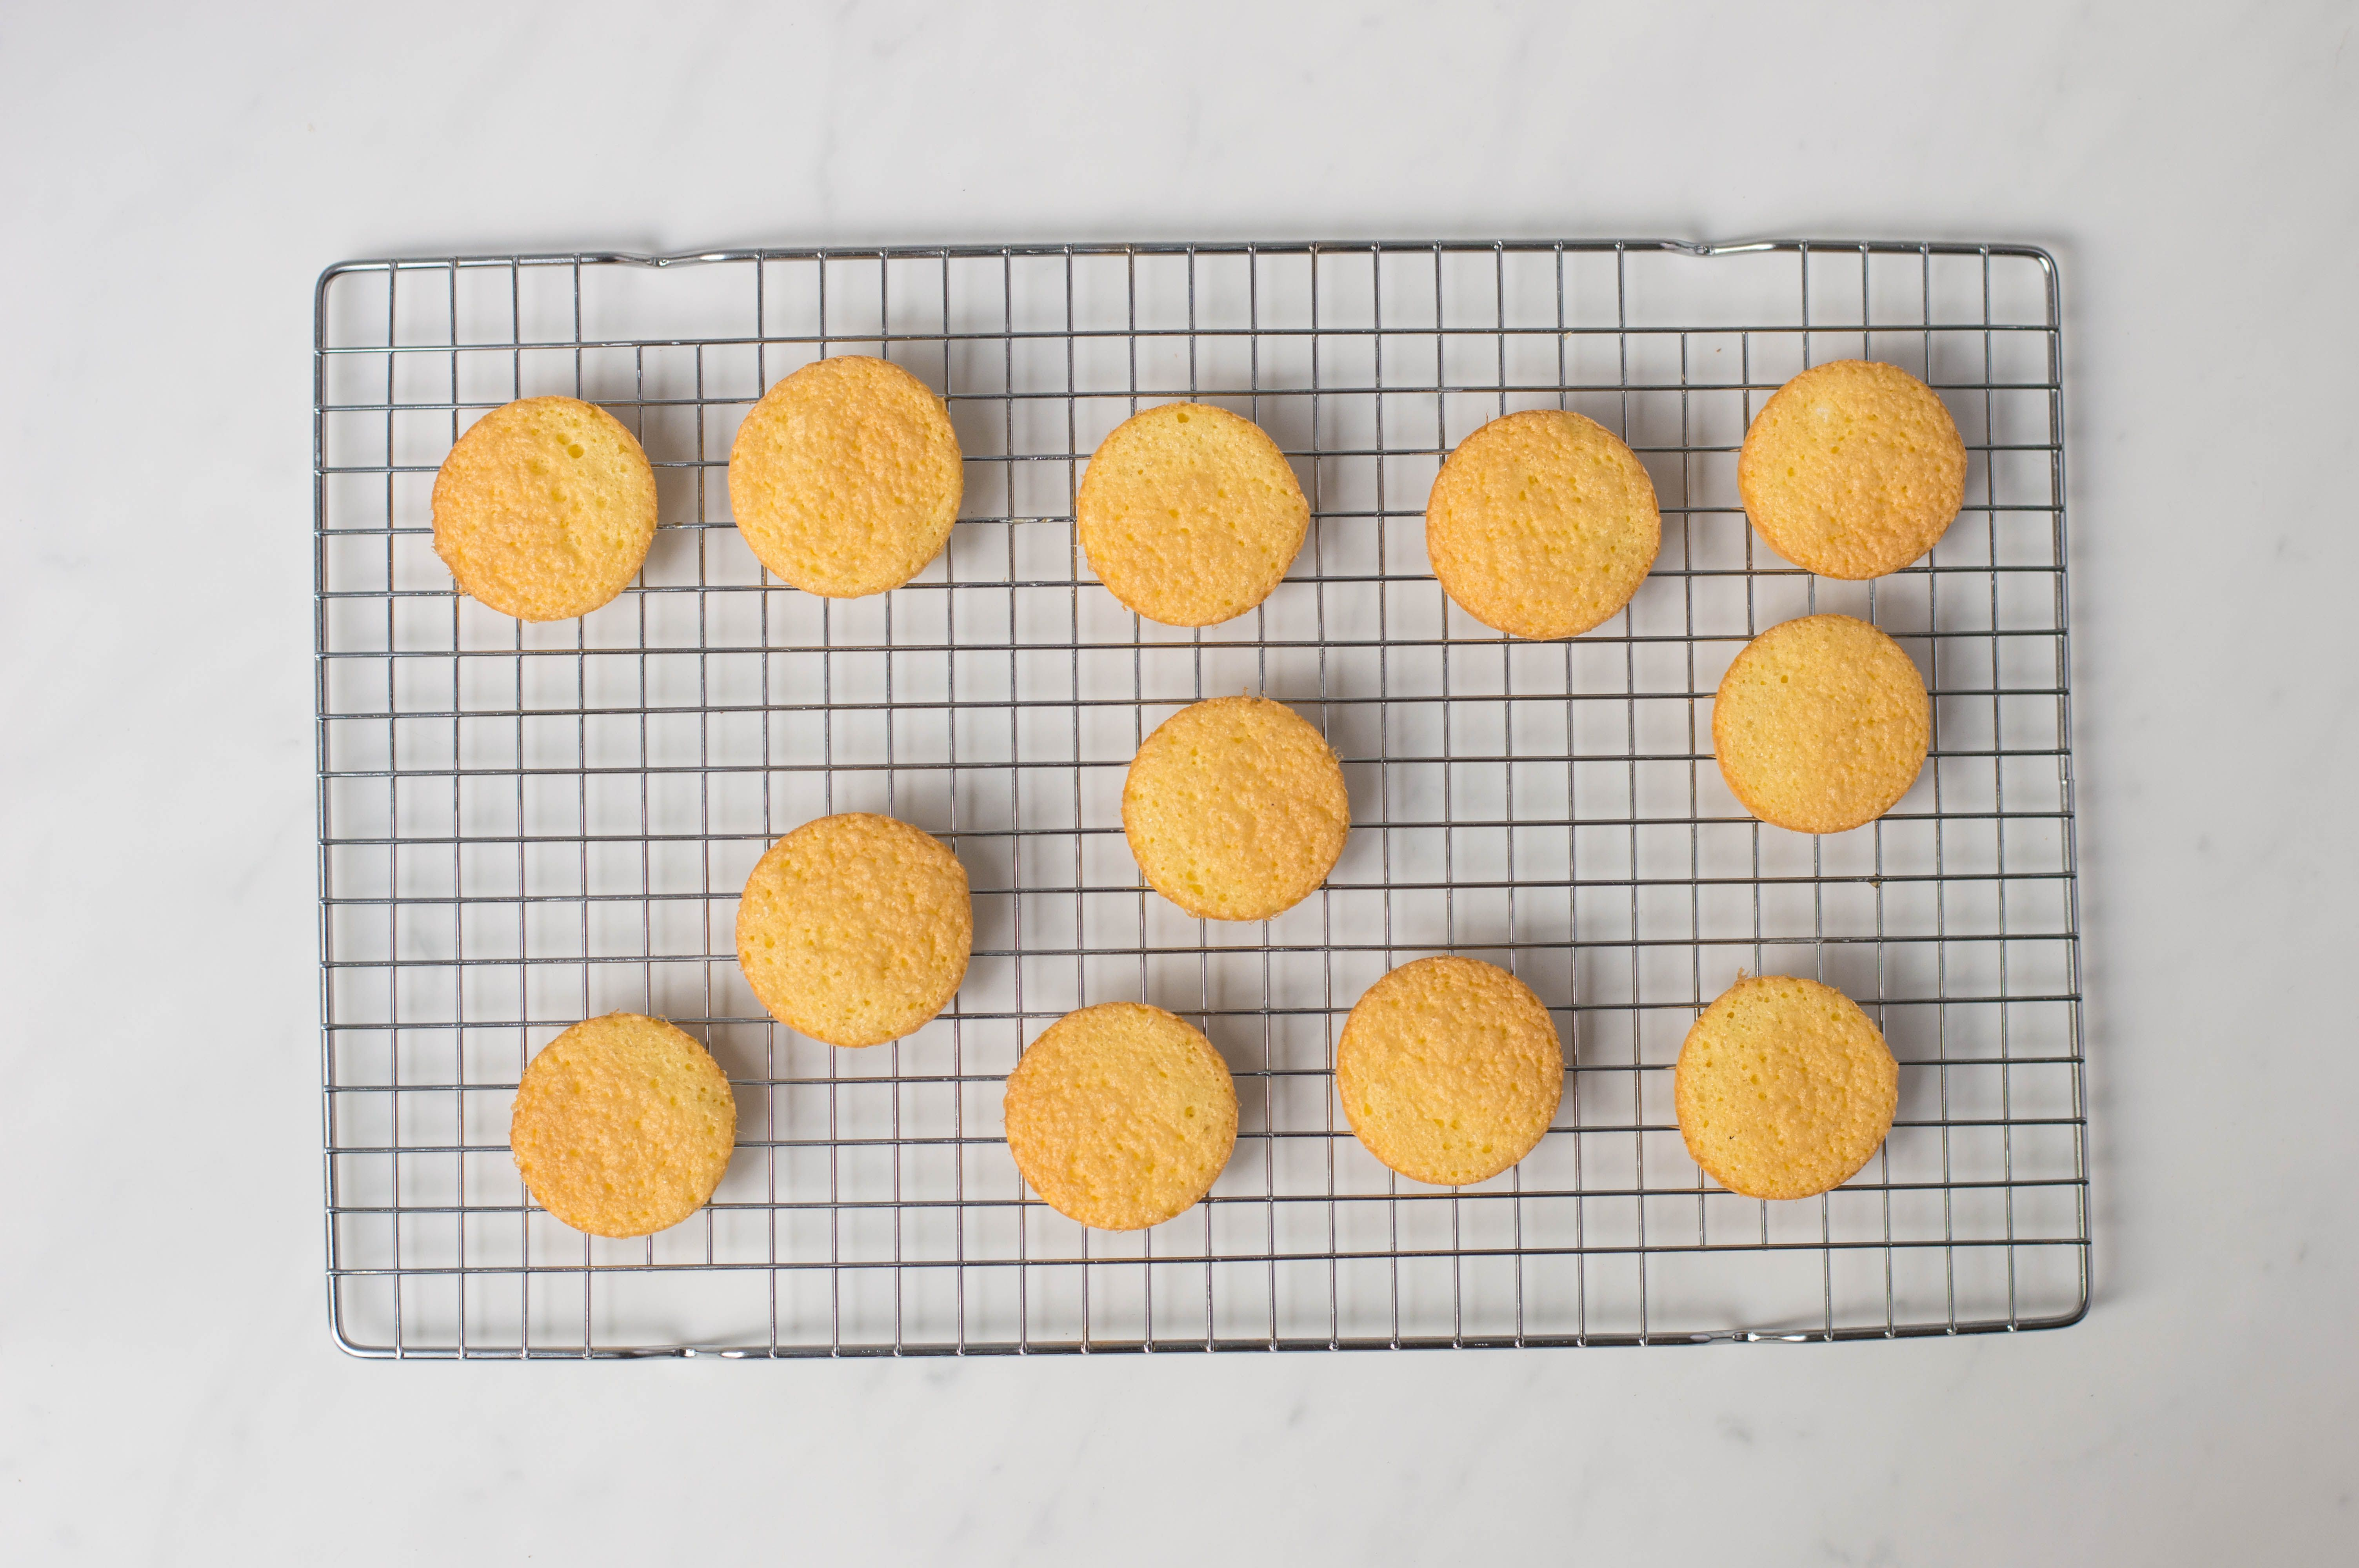 place jaffa cakes on wire rack to cool